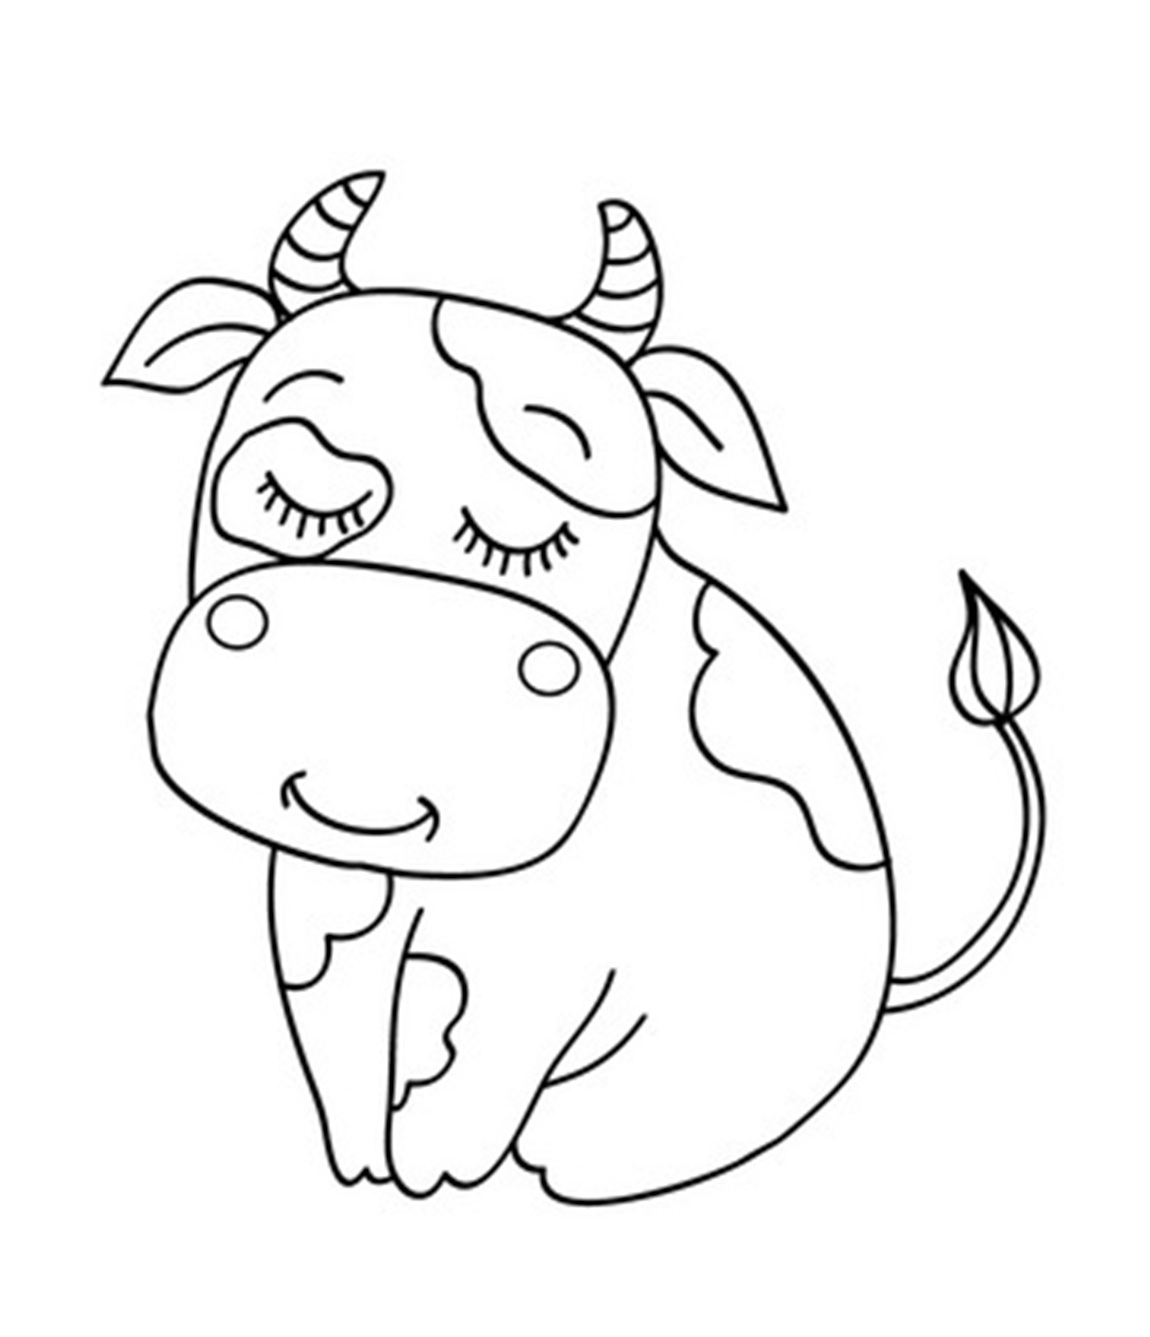 moo moo brown cow coloring pages